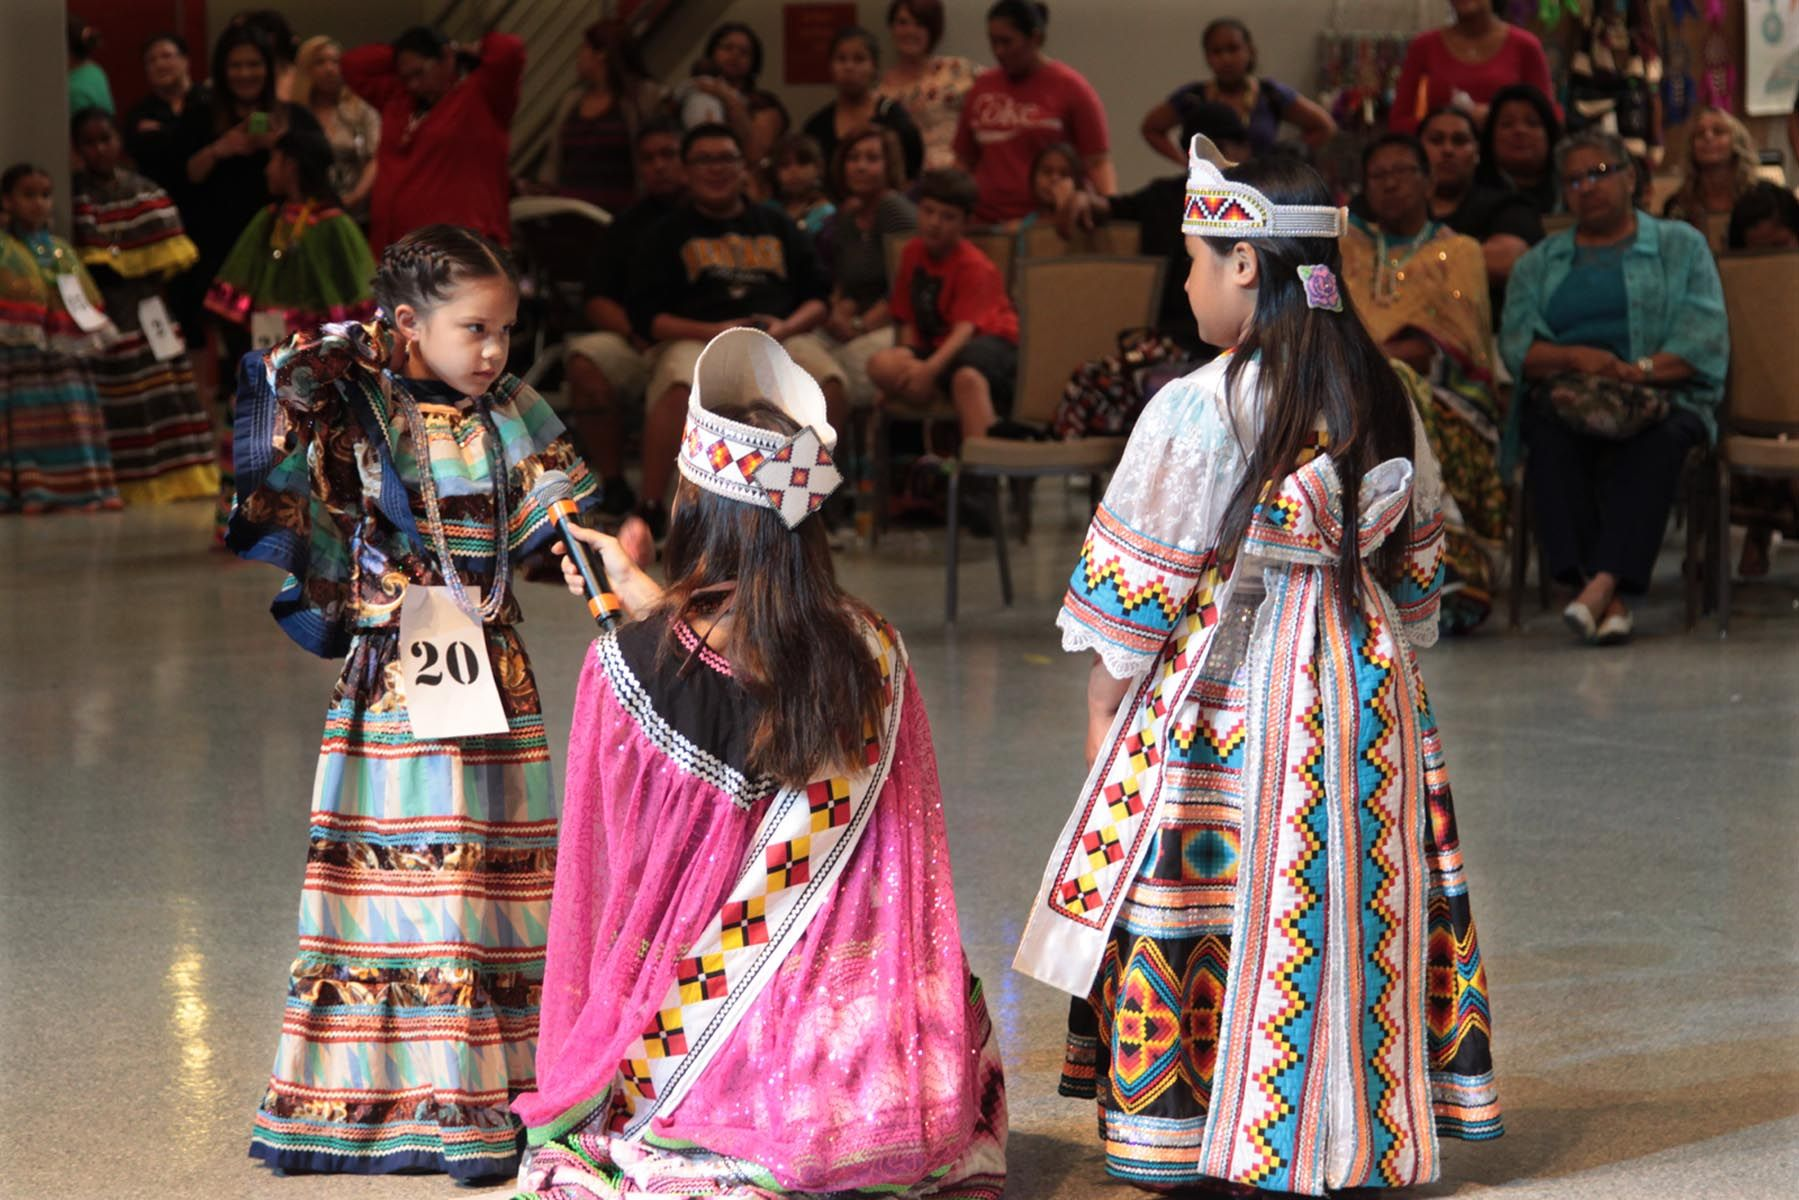 Little leaders born at Tribal Fair pageant | The Seminole Tribune